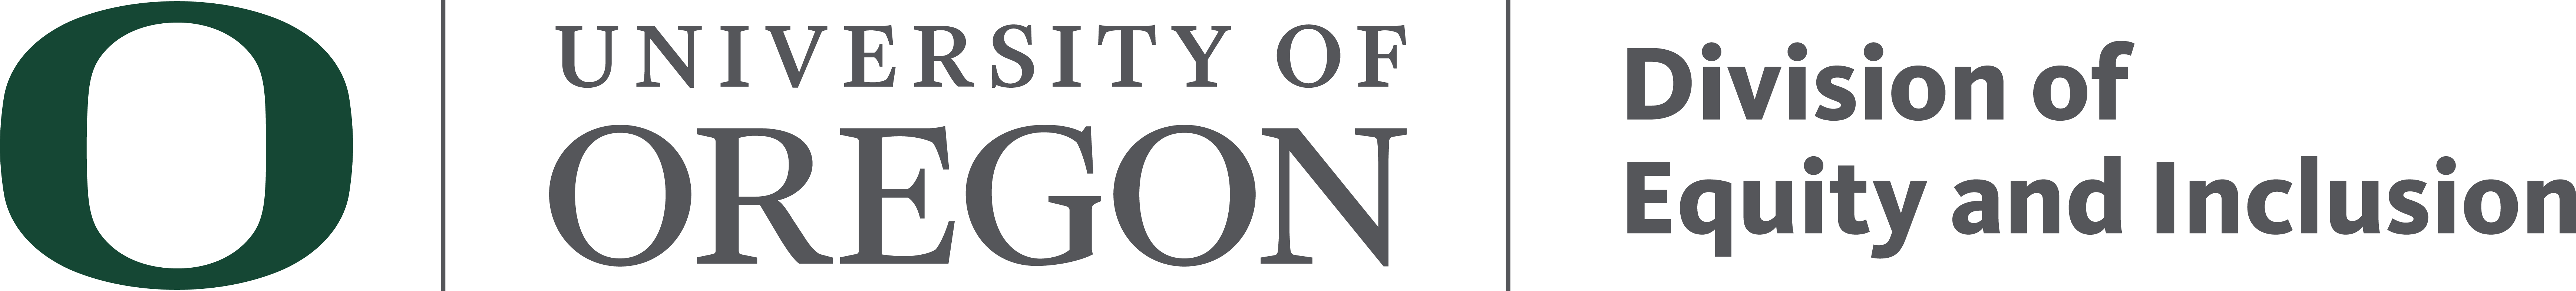 UO Division of Equity and Inclusion